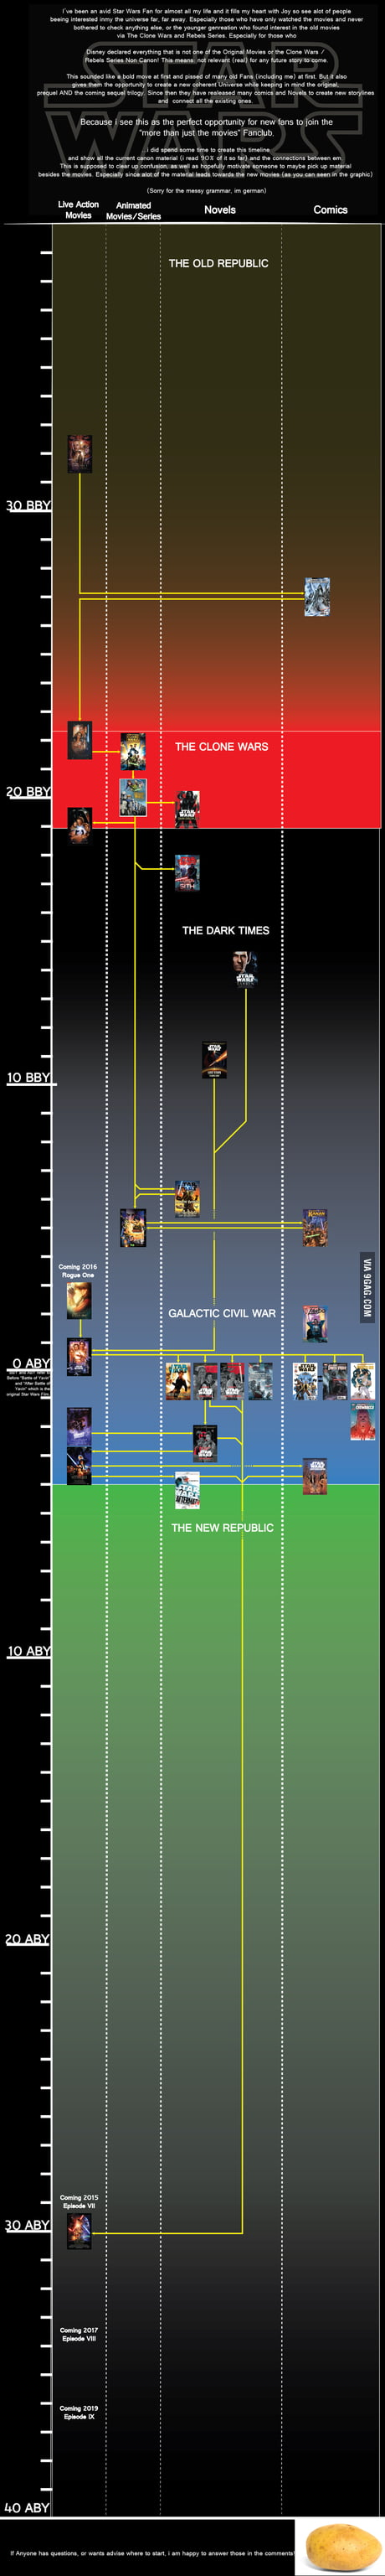 Complete Star Wars Timeline New Canon 9gag